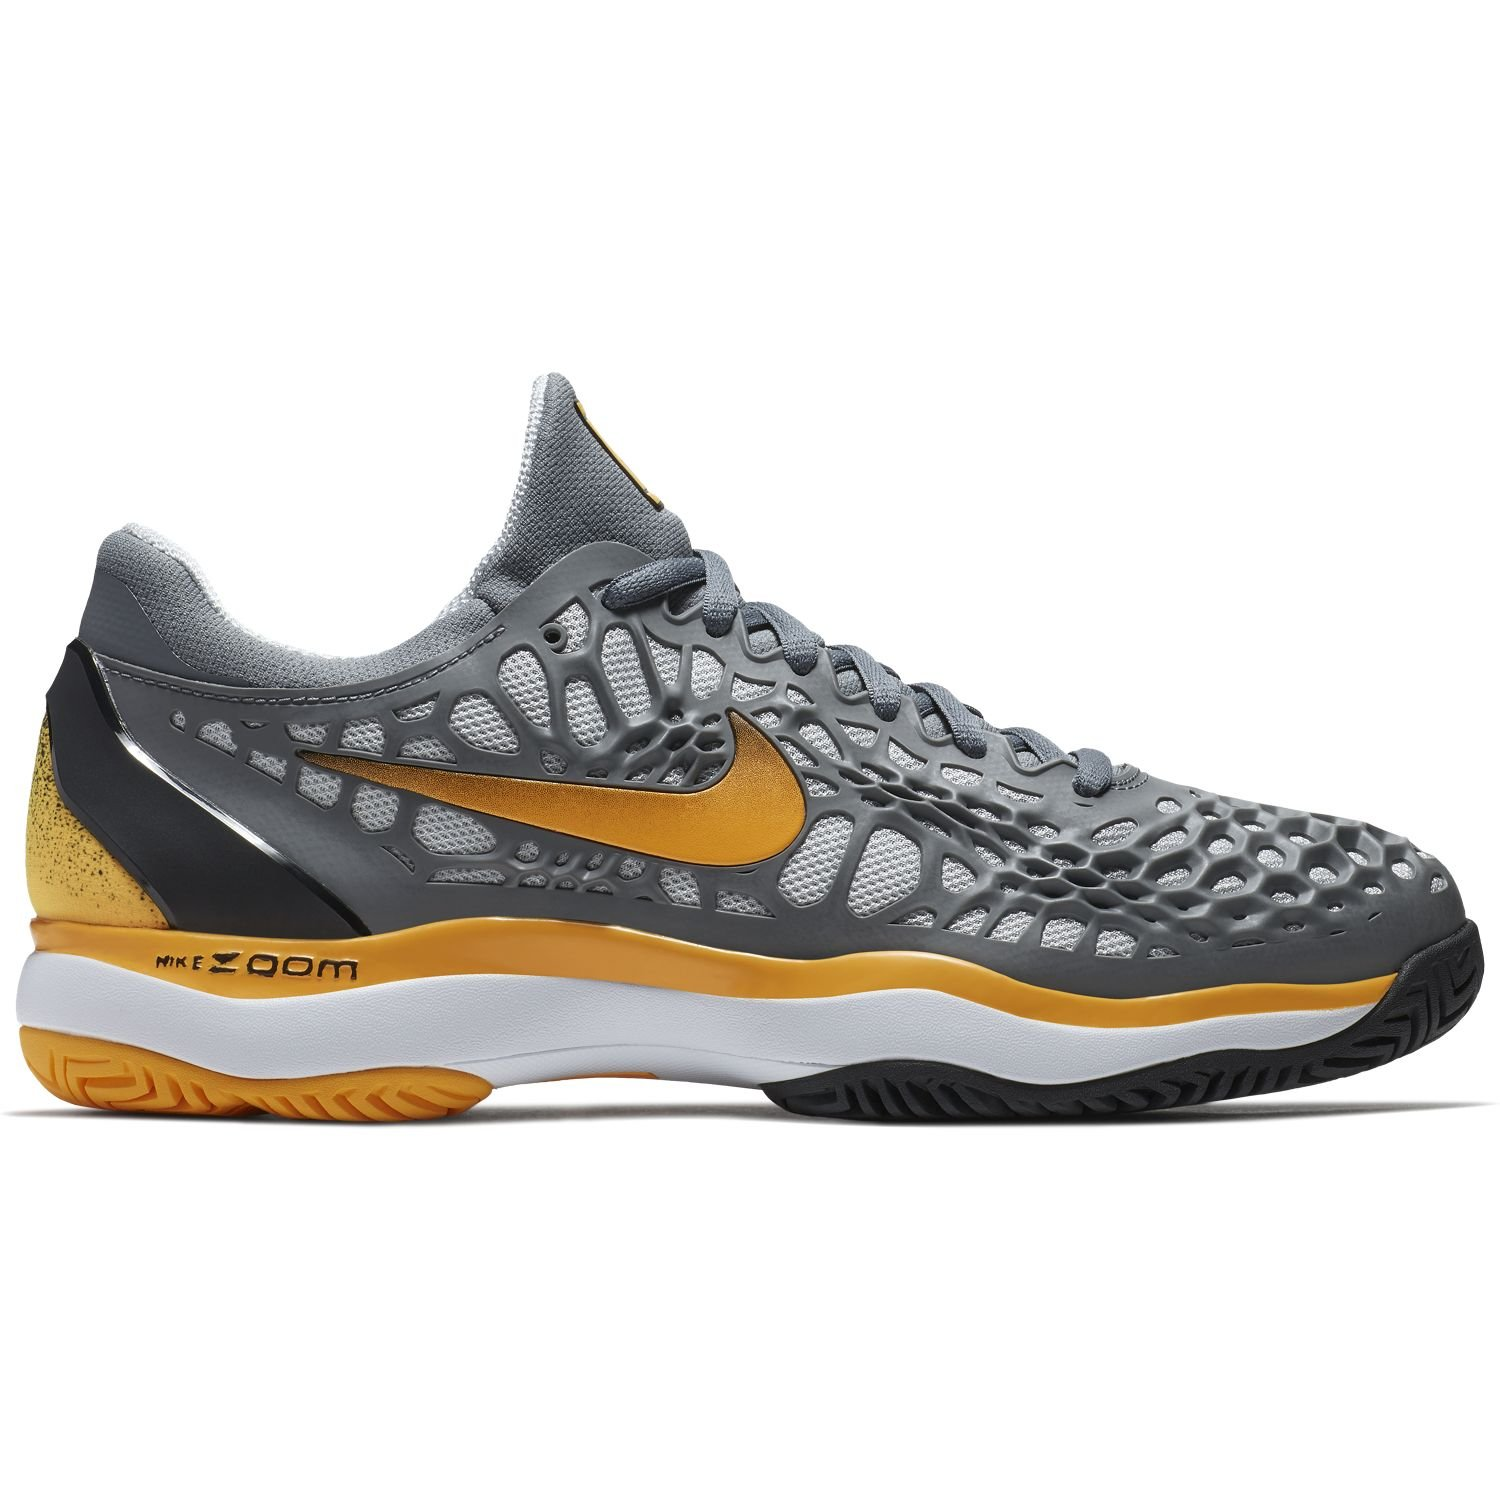 Nike Mens Zoom Cage 3 Tennis Shoes B0761Y9XXV 9.5 D(M) US|Cool Grey/Laser Orange/Black/White